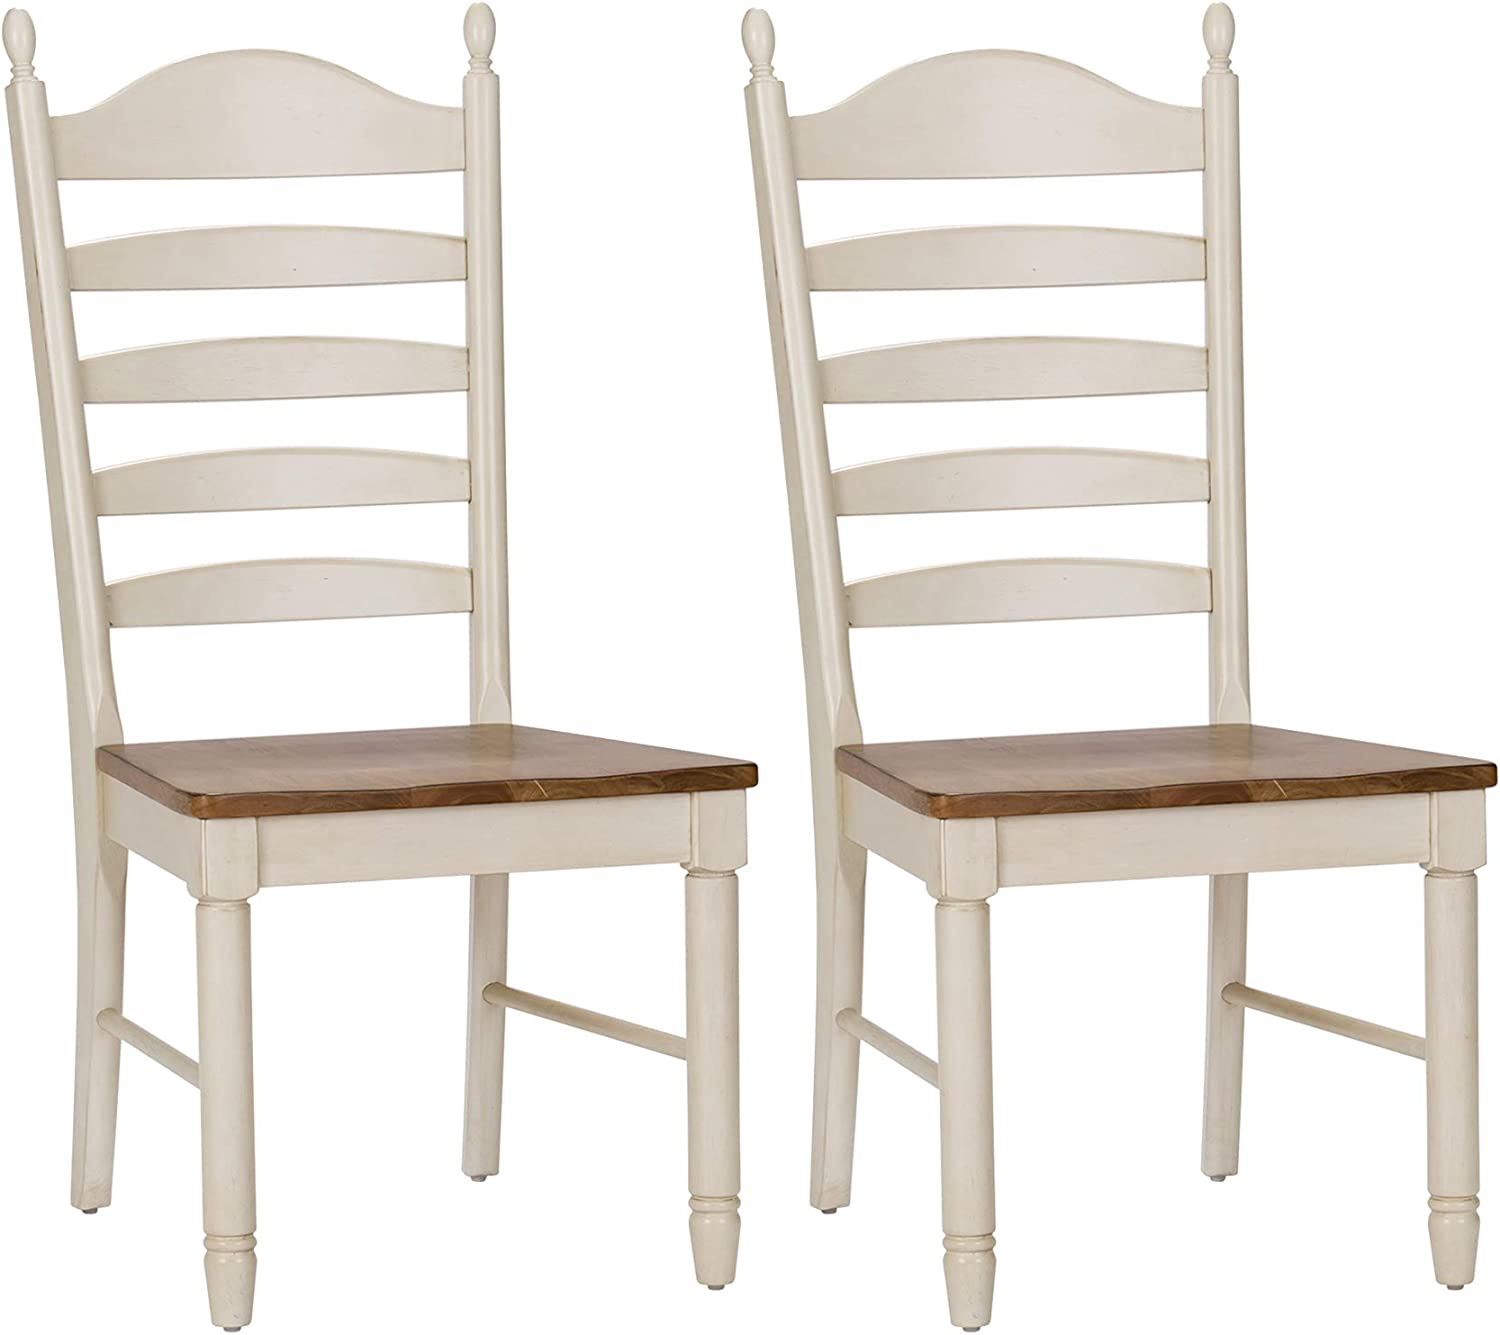 Liberty Furniture Industries Springfield (Set of 2) Ladder Back Side Chair (RTA), W19 x D23 x H42, White